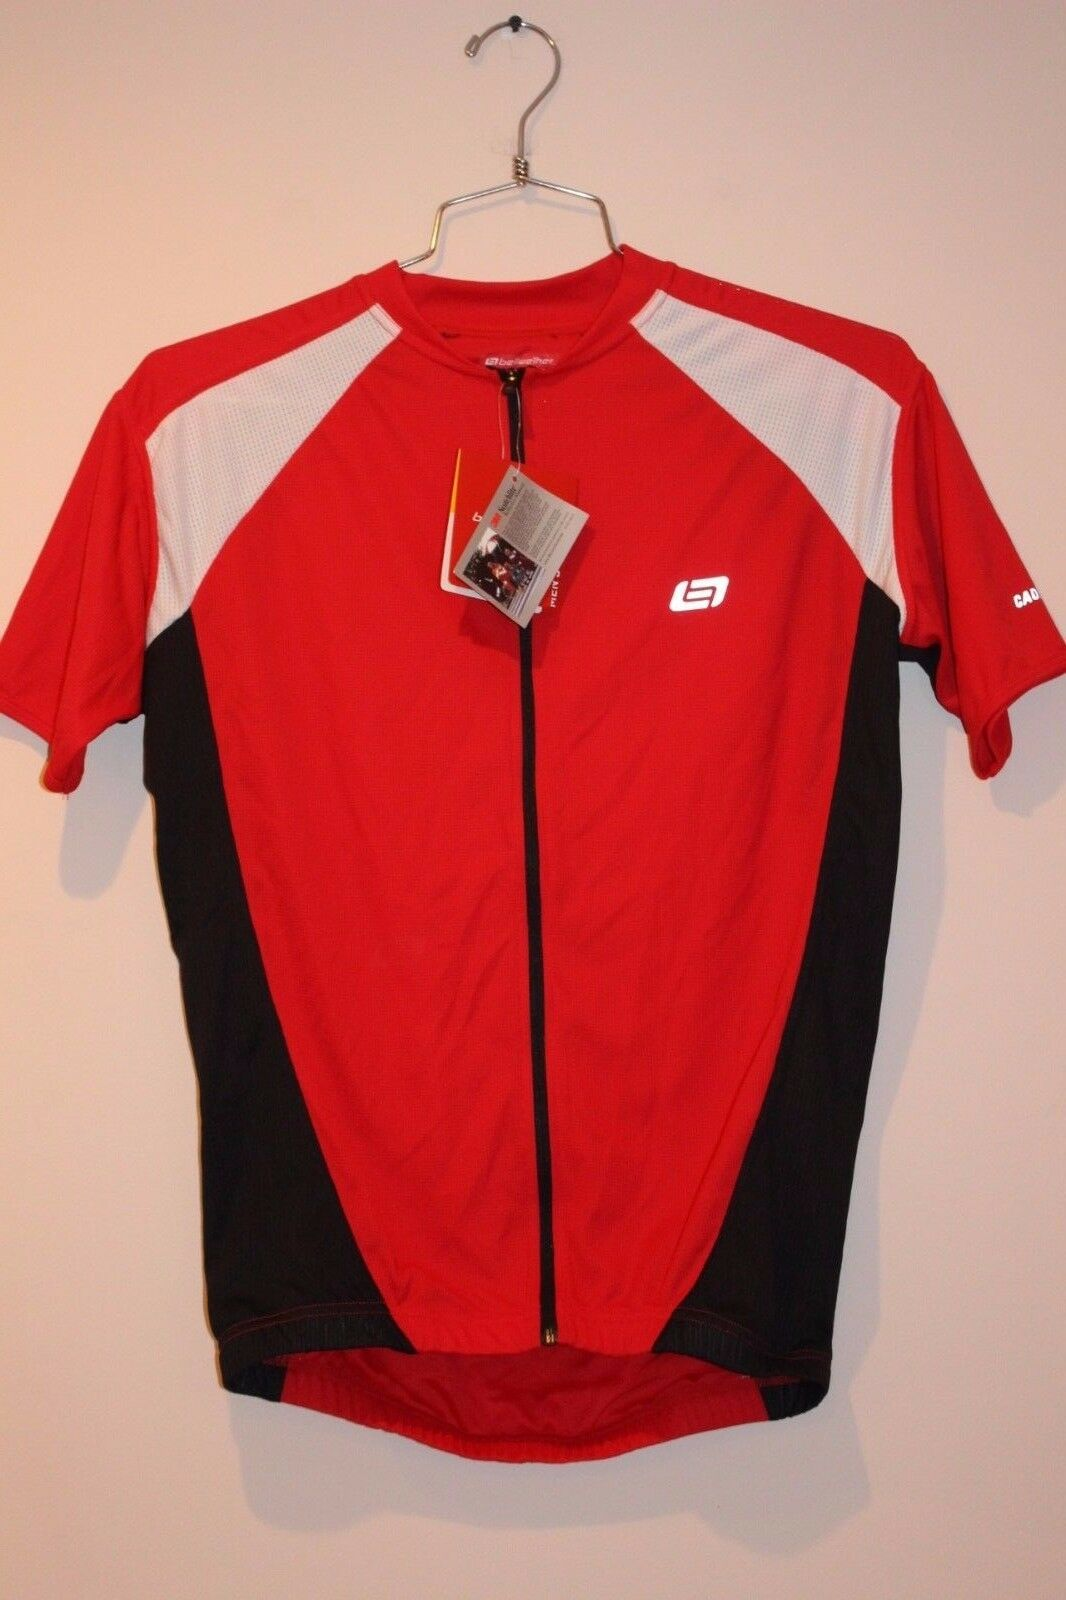 Bellwether Pro Mesh Men's Cycling Jersey Size LARGE FERRARI RED 91183064 NEW